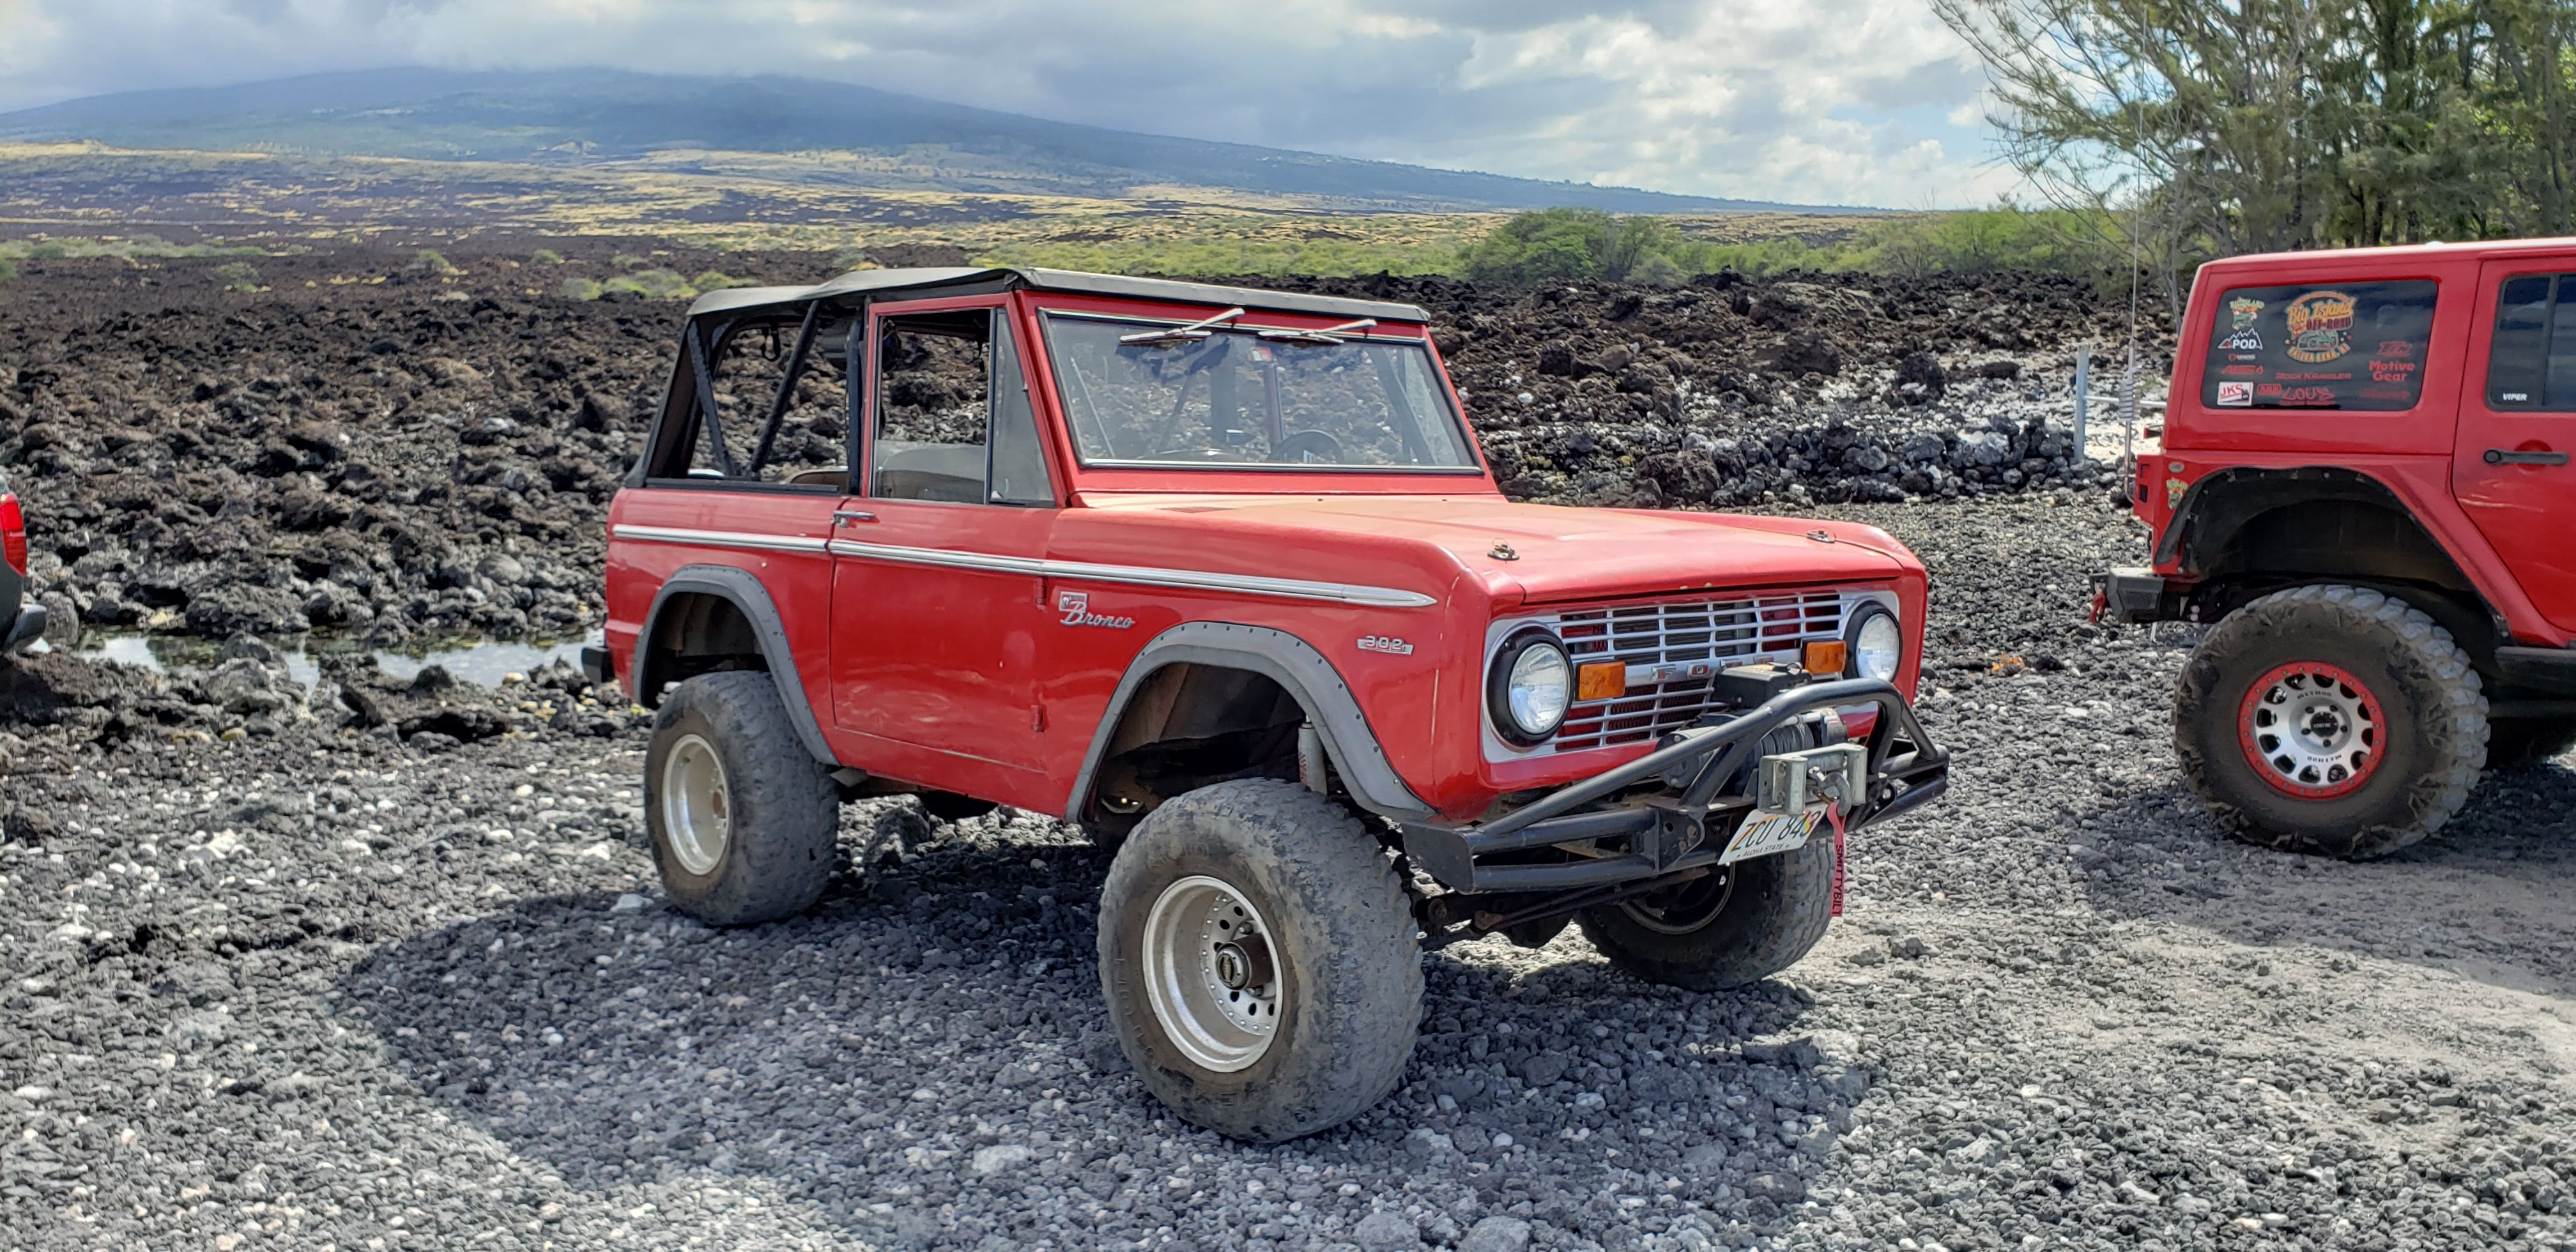 hawaii-off-roading-2019-30